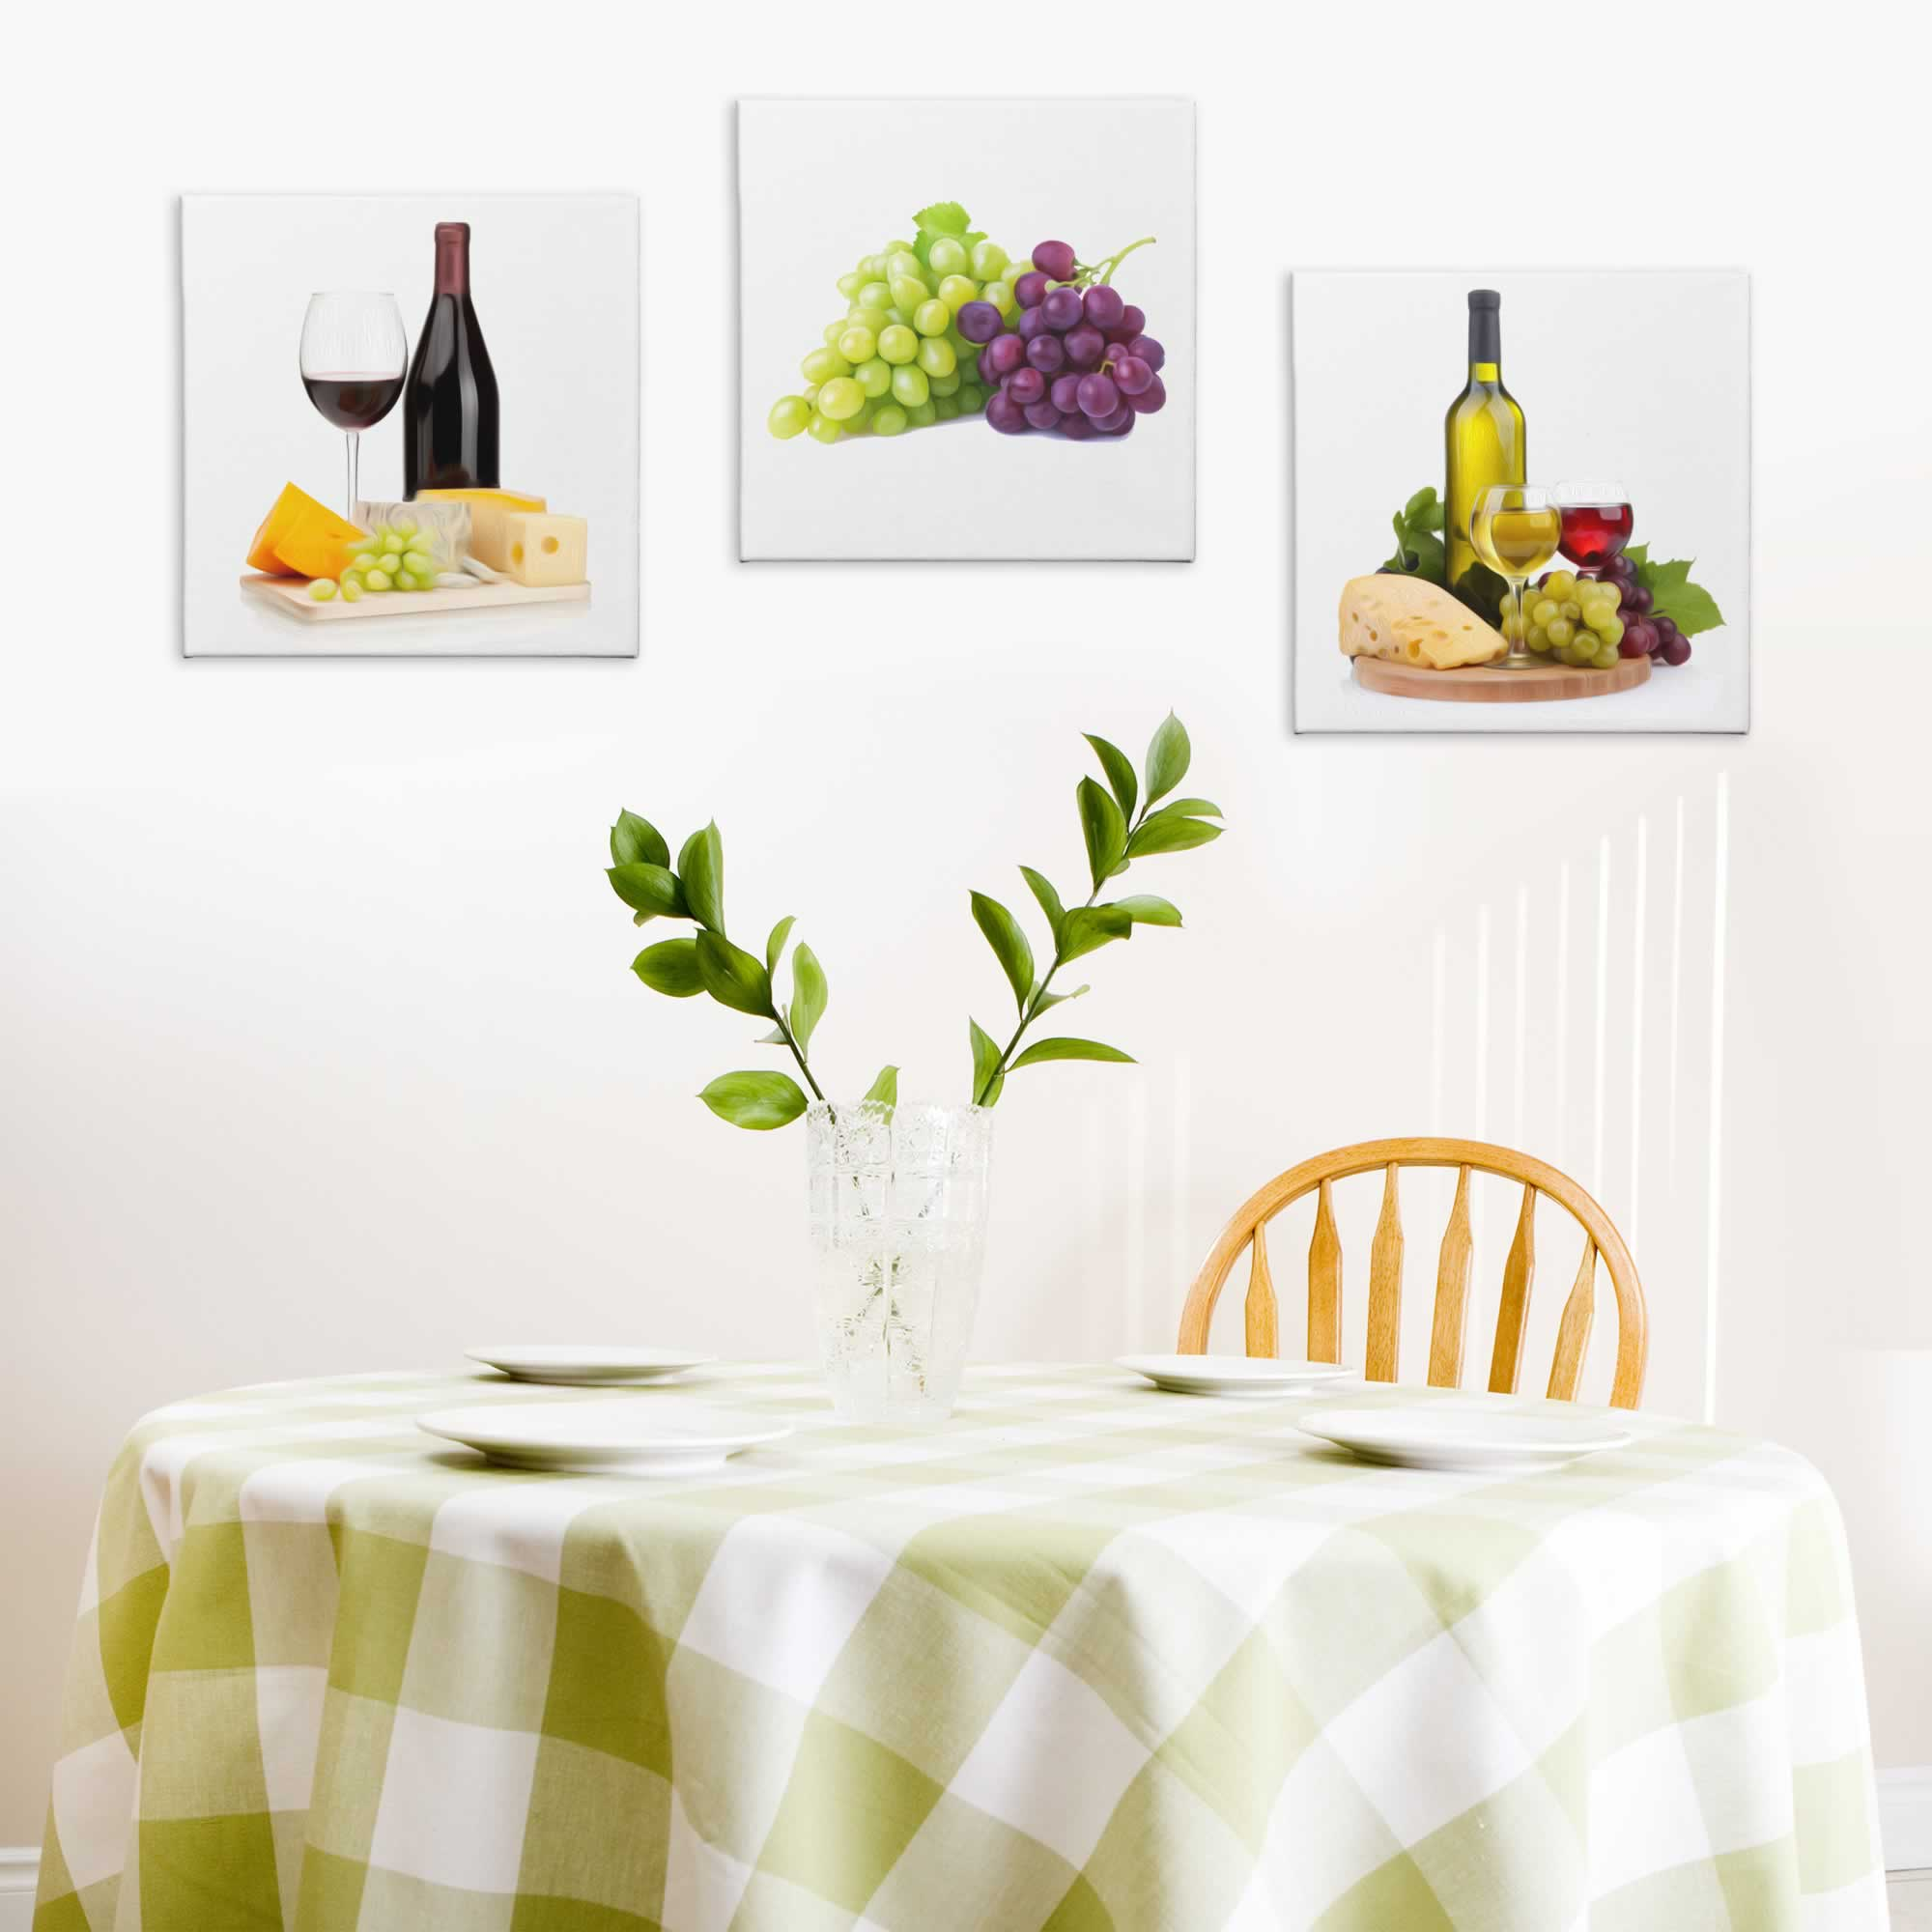 Wine and Cheese - Contemporary giclee Painting Print on Canvas - Lifestyle Image